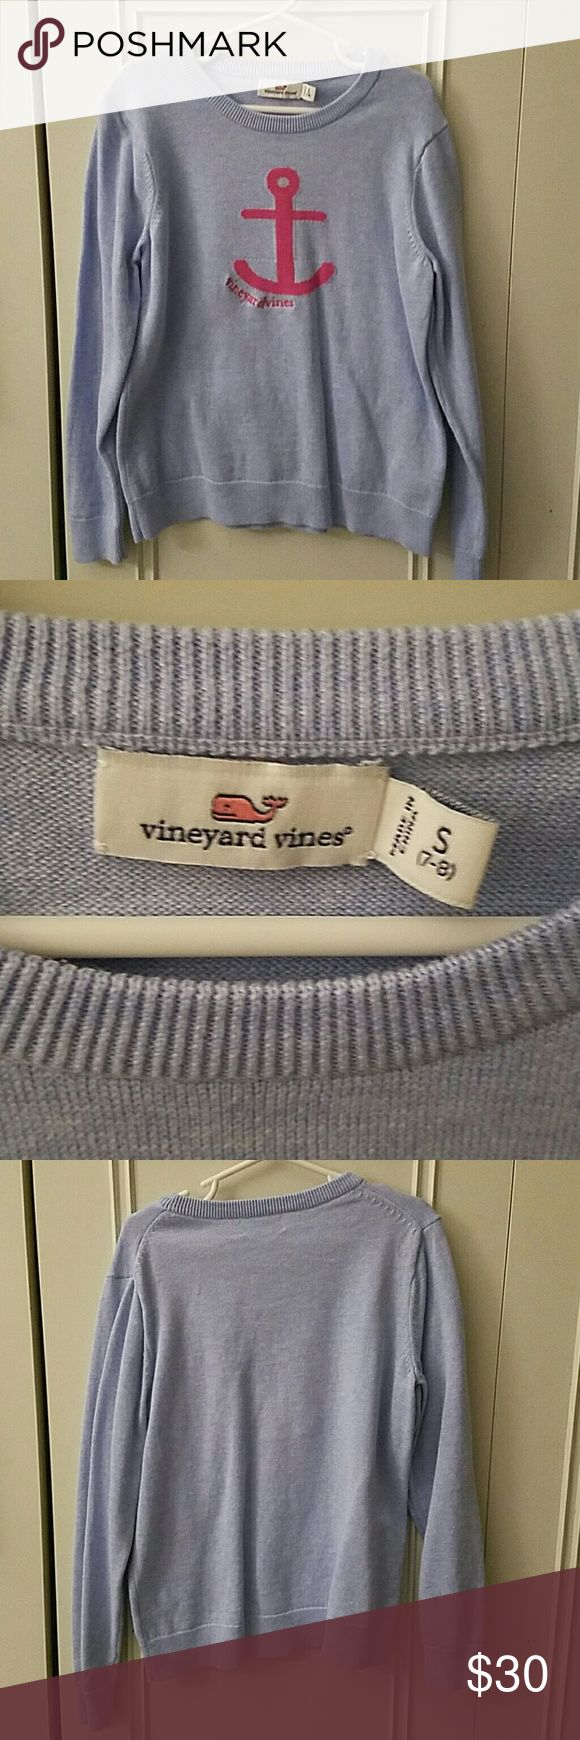 EUC Vineyard VINES girls blue sweater 7-8 In perfect condition. Worn once for pictures. Such a classic design and beautiful color! Vineyard Vines Shirts & Tops Sweaters